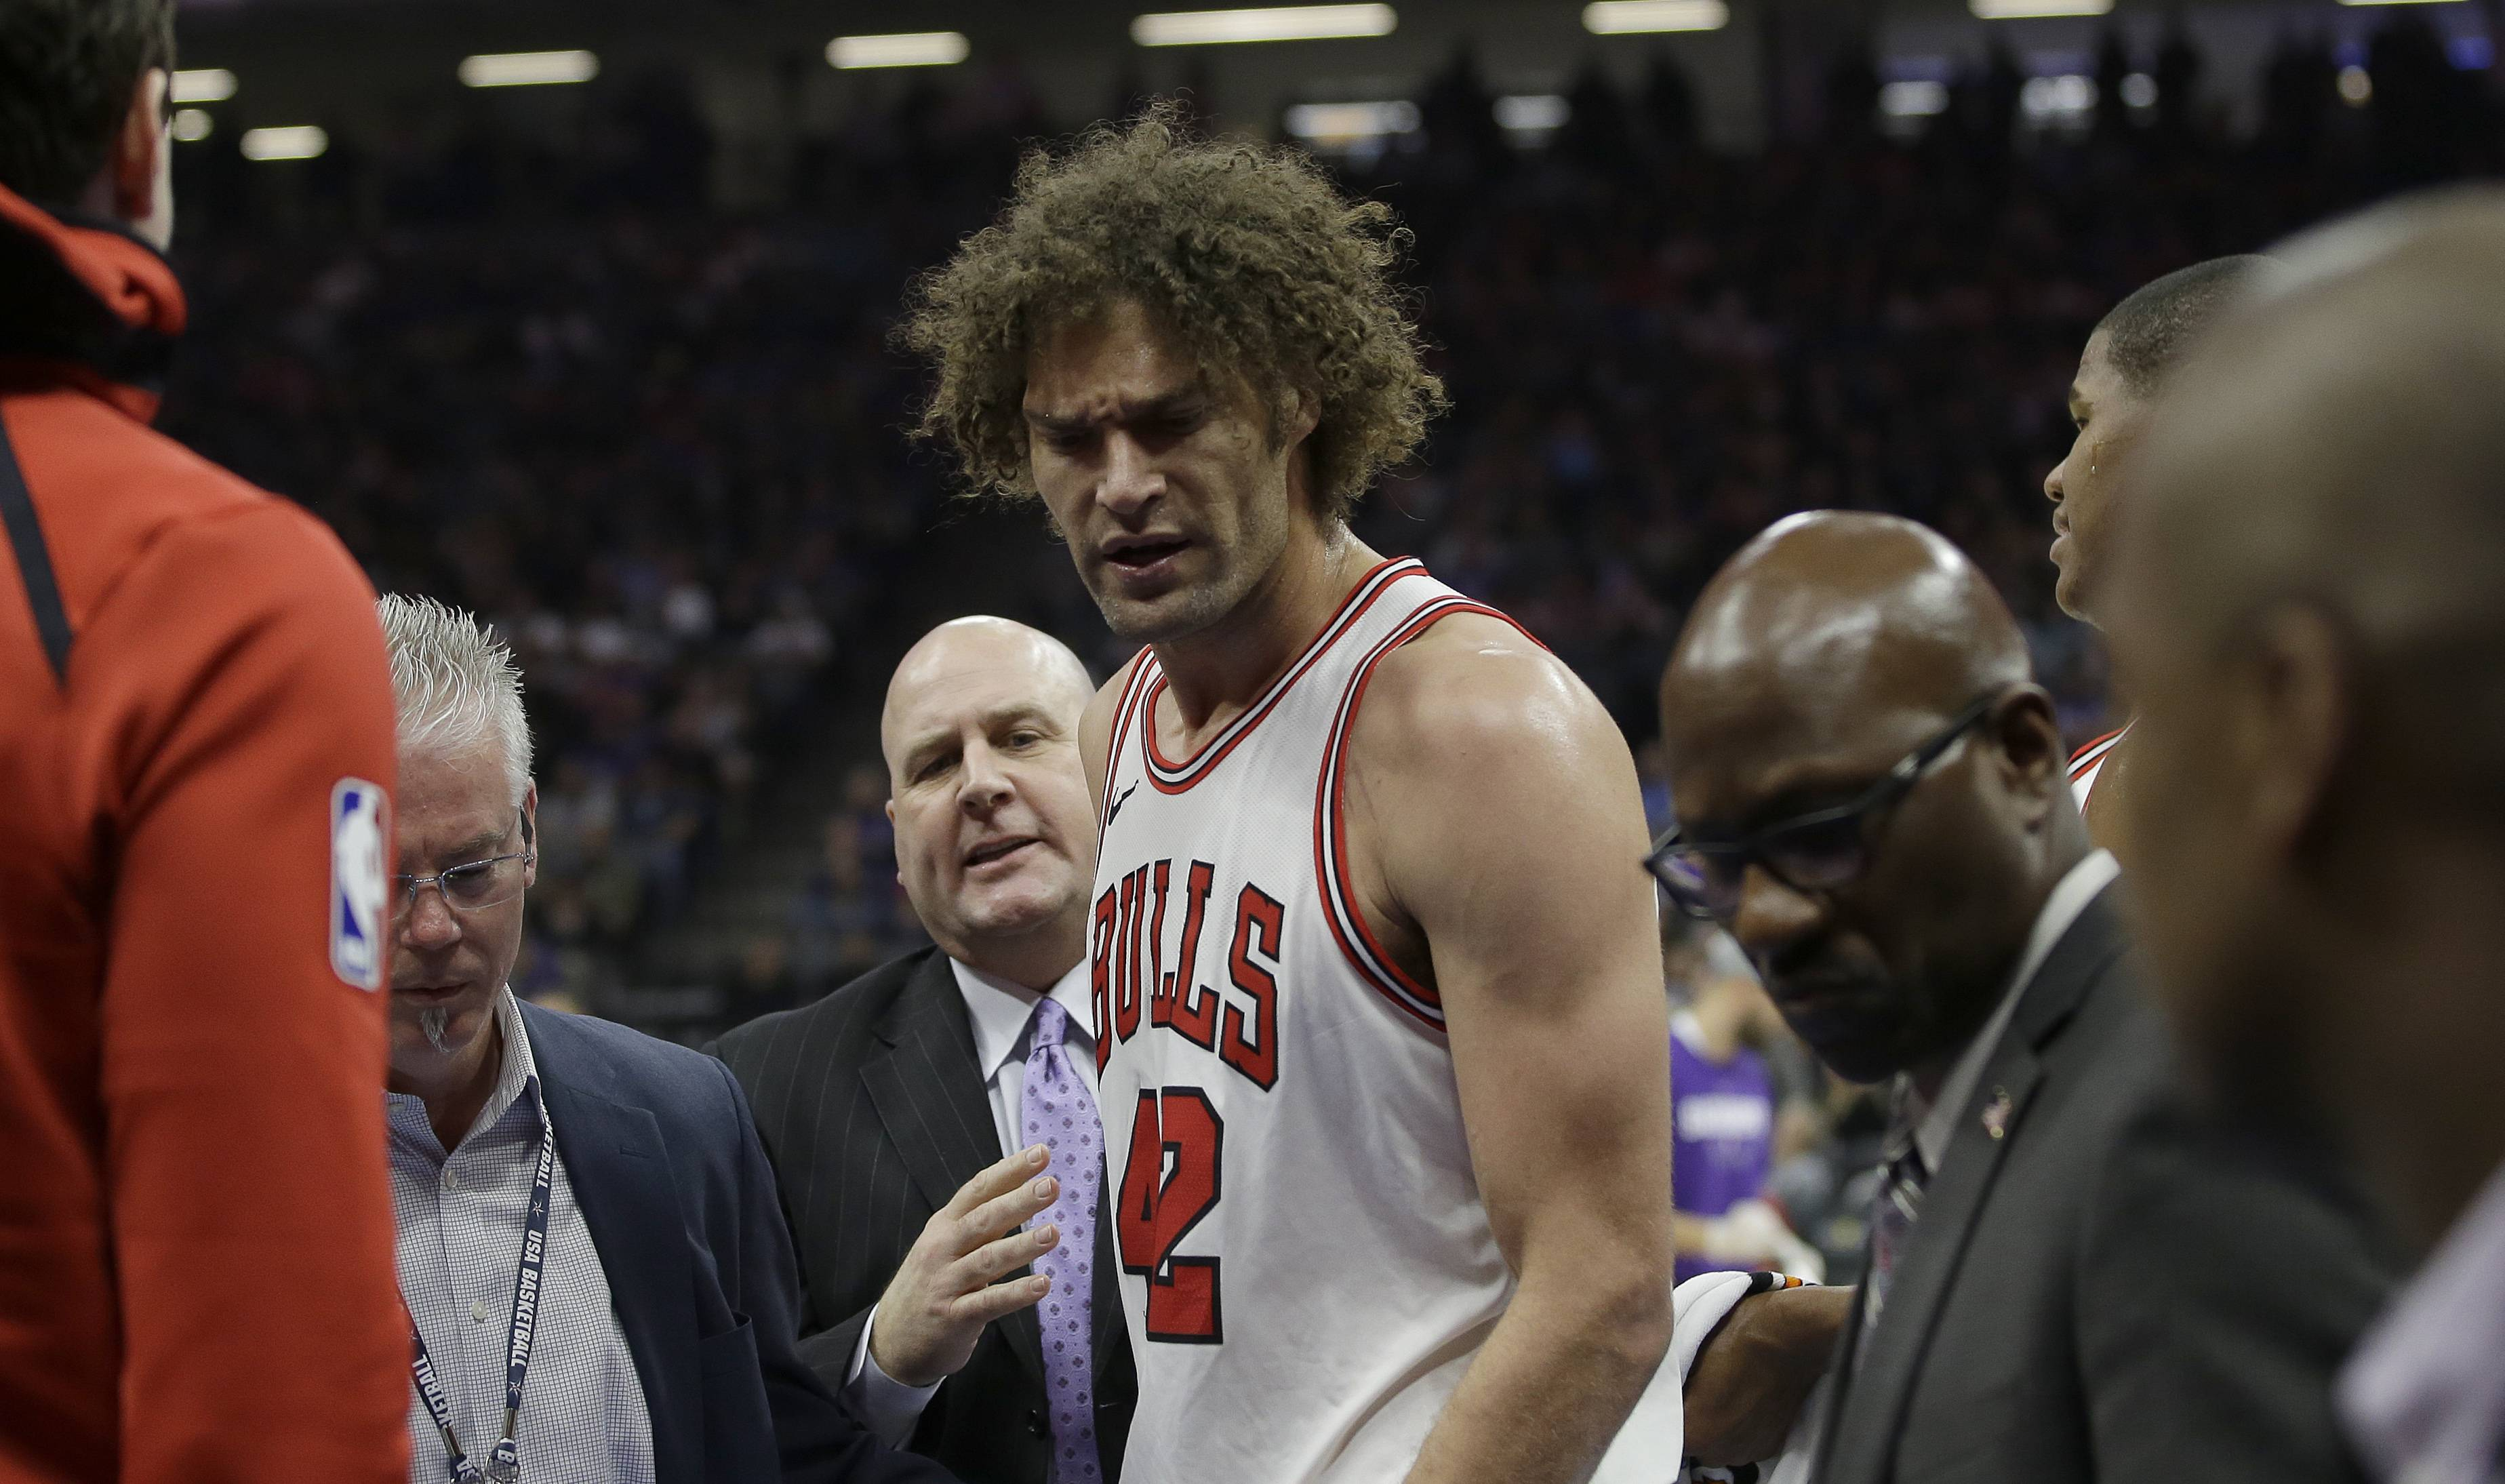 Lopez disappointed to sit out, but thinks he has future with Bulls